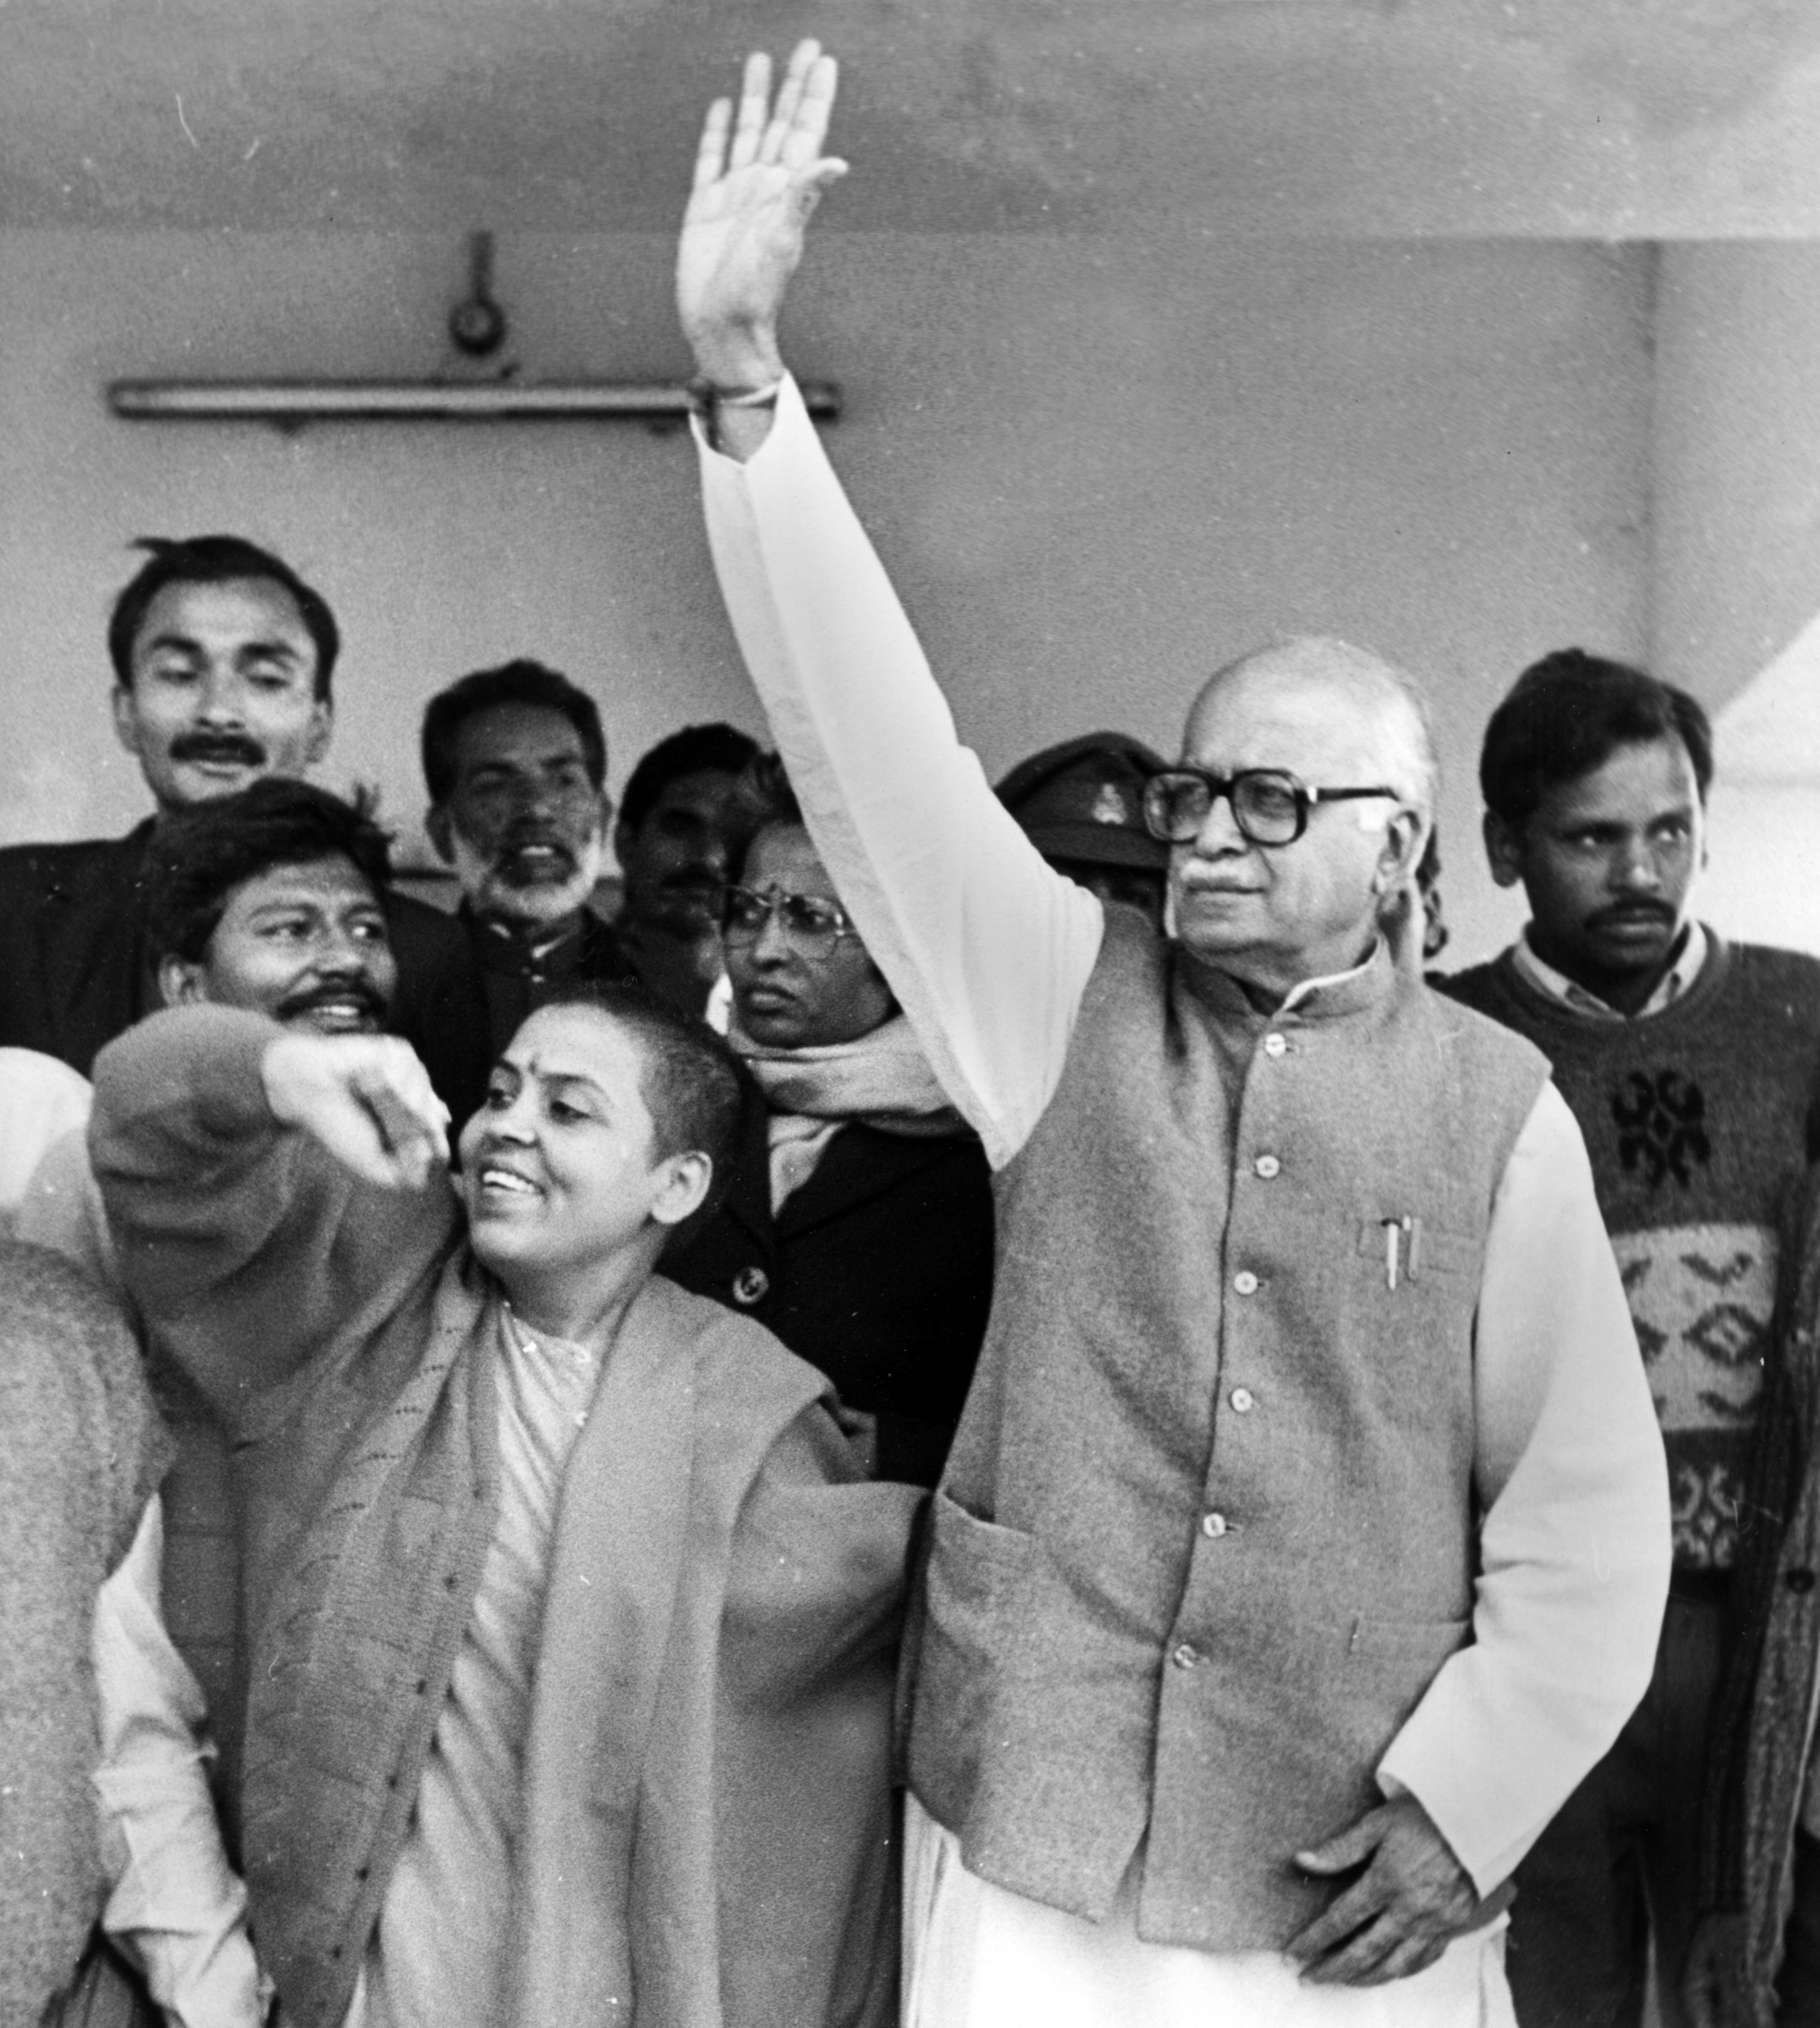 BJP leaders L.K. Advani and Uma Bharti waving to the crowd outside the court of the judicial magistrate at Akbarpur on December 10, 1992. Credit: T. Narayan